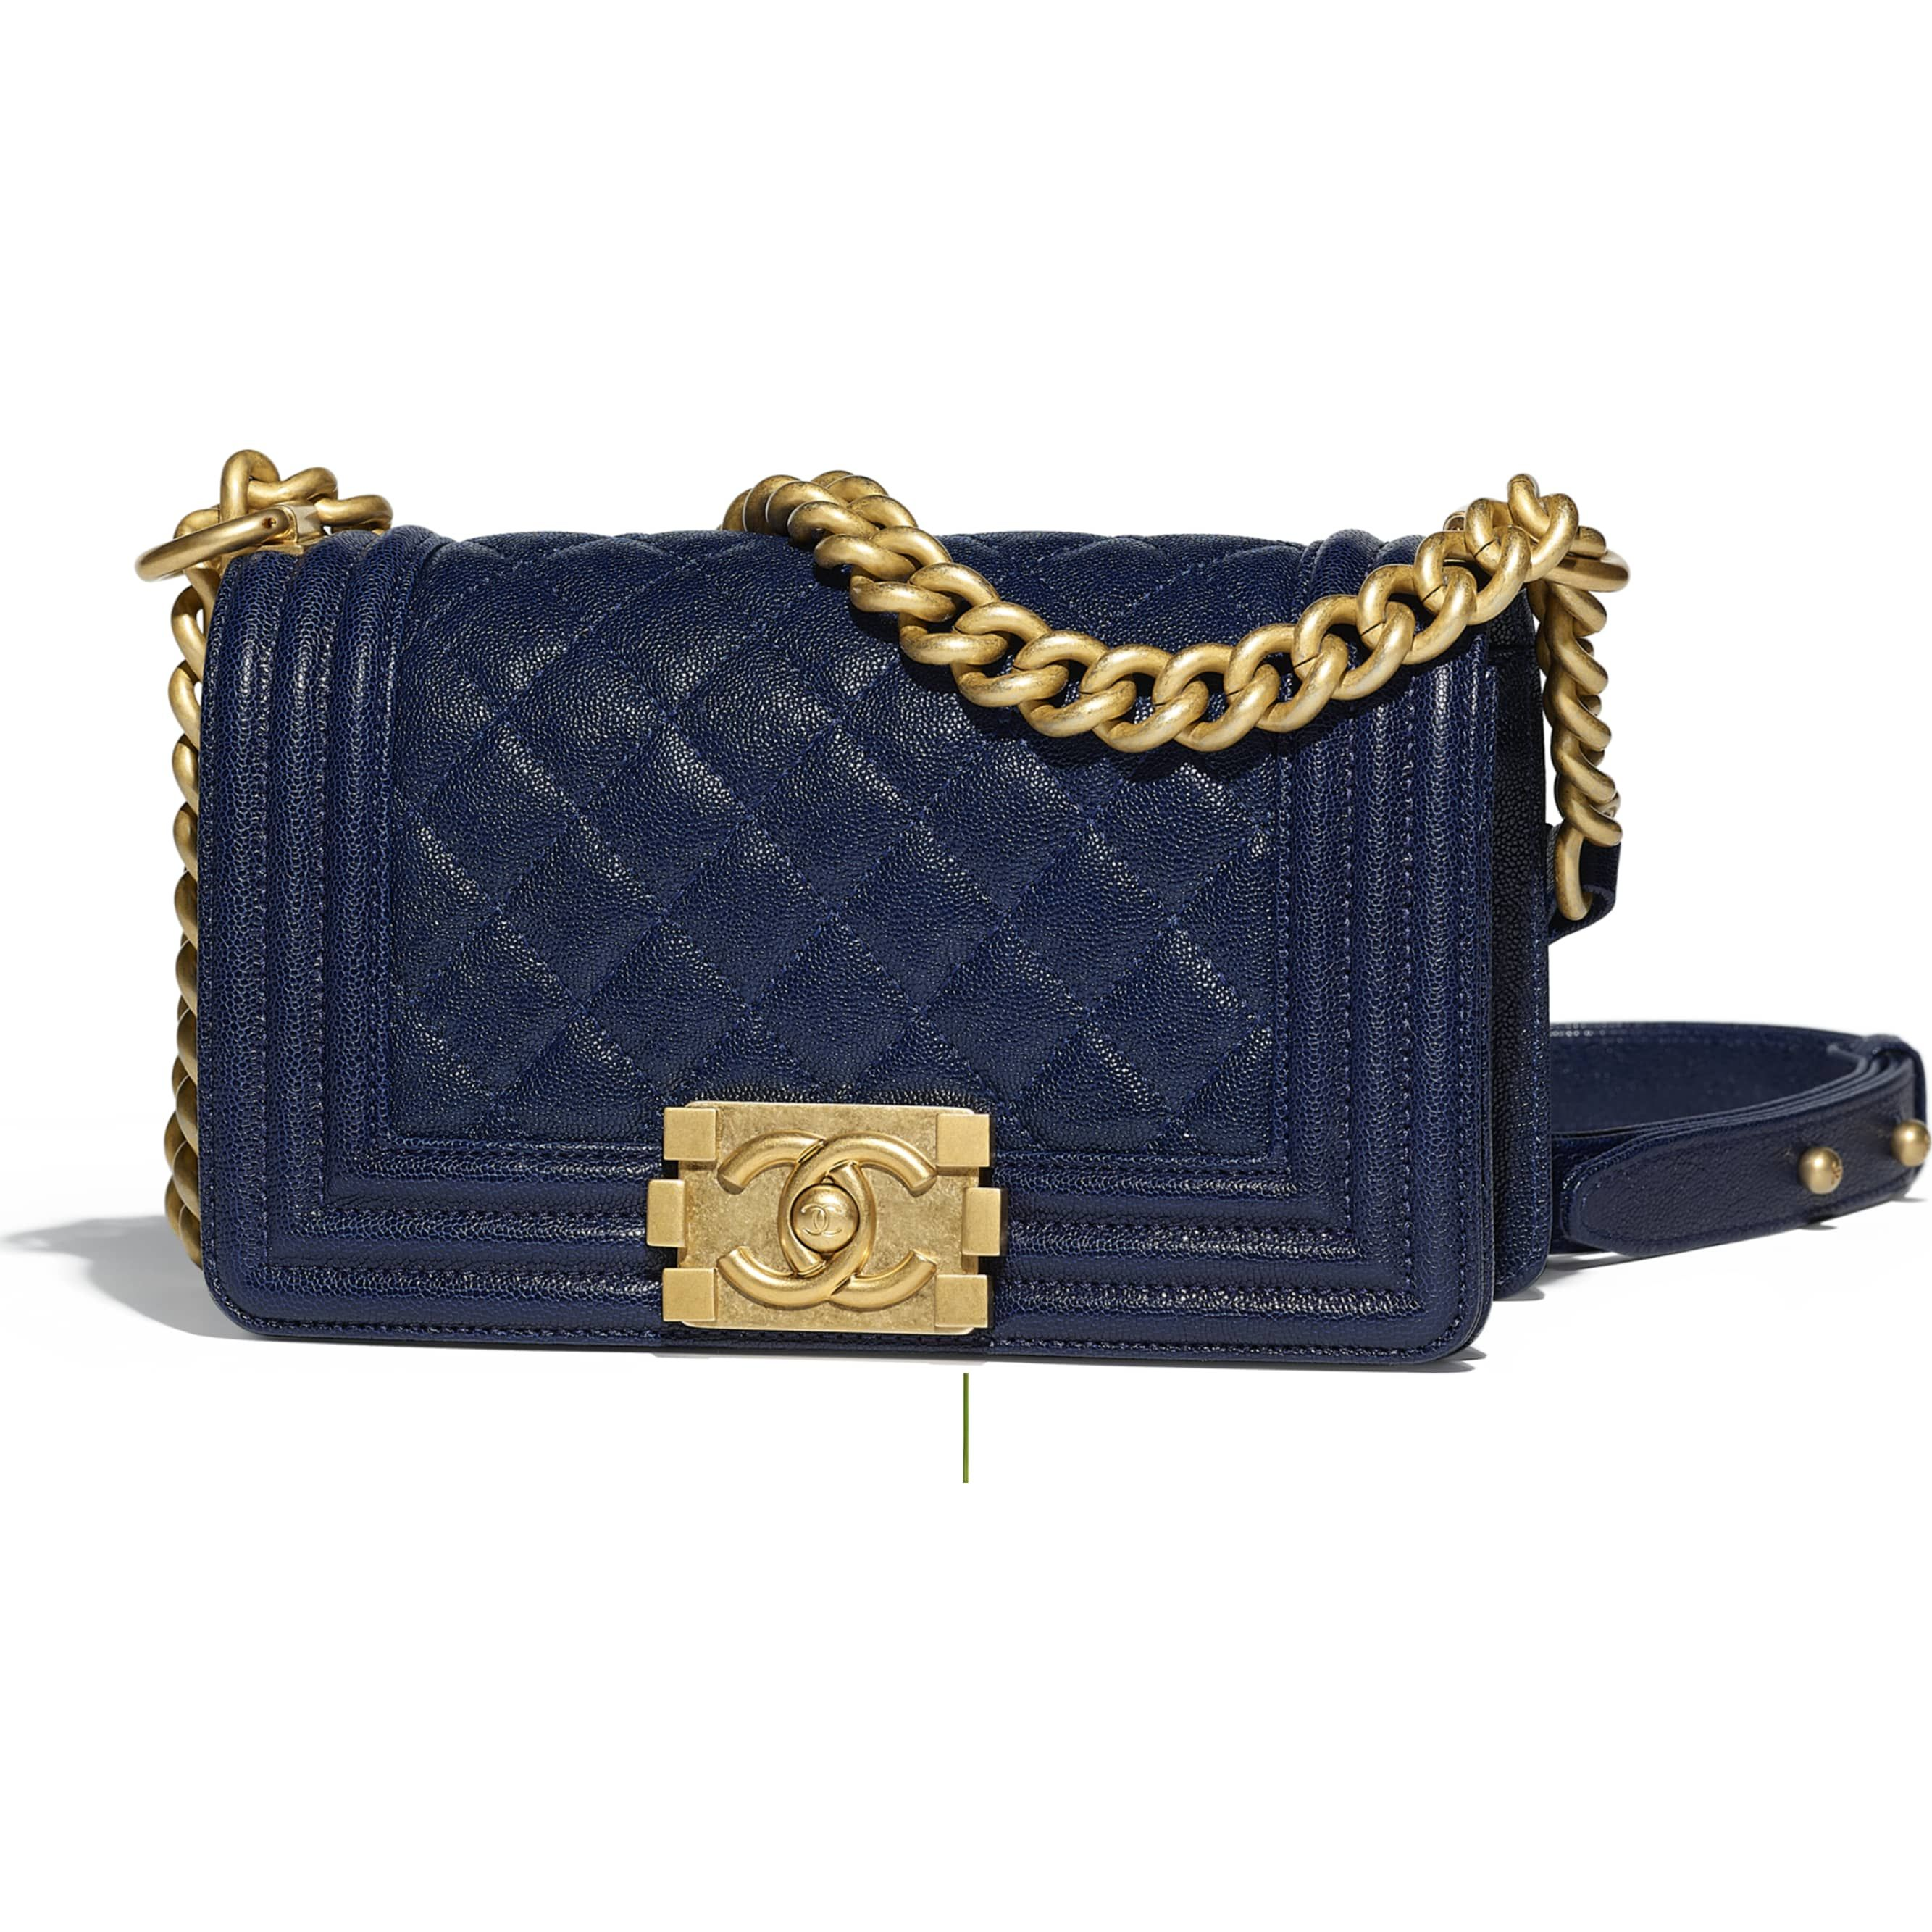 c648ef021a42 Grained Calfskin & Gold-Tone Metal Navy Blue Small BOY CHANEL Handbag |  CHANEL